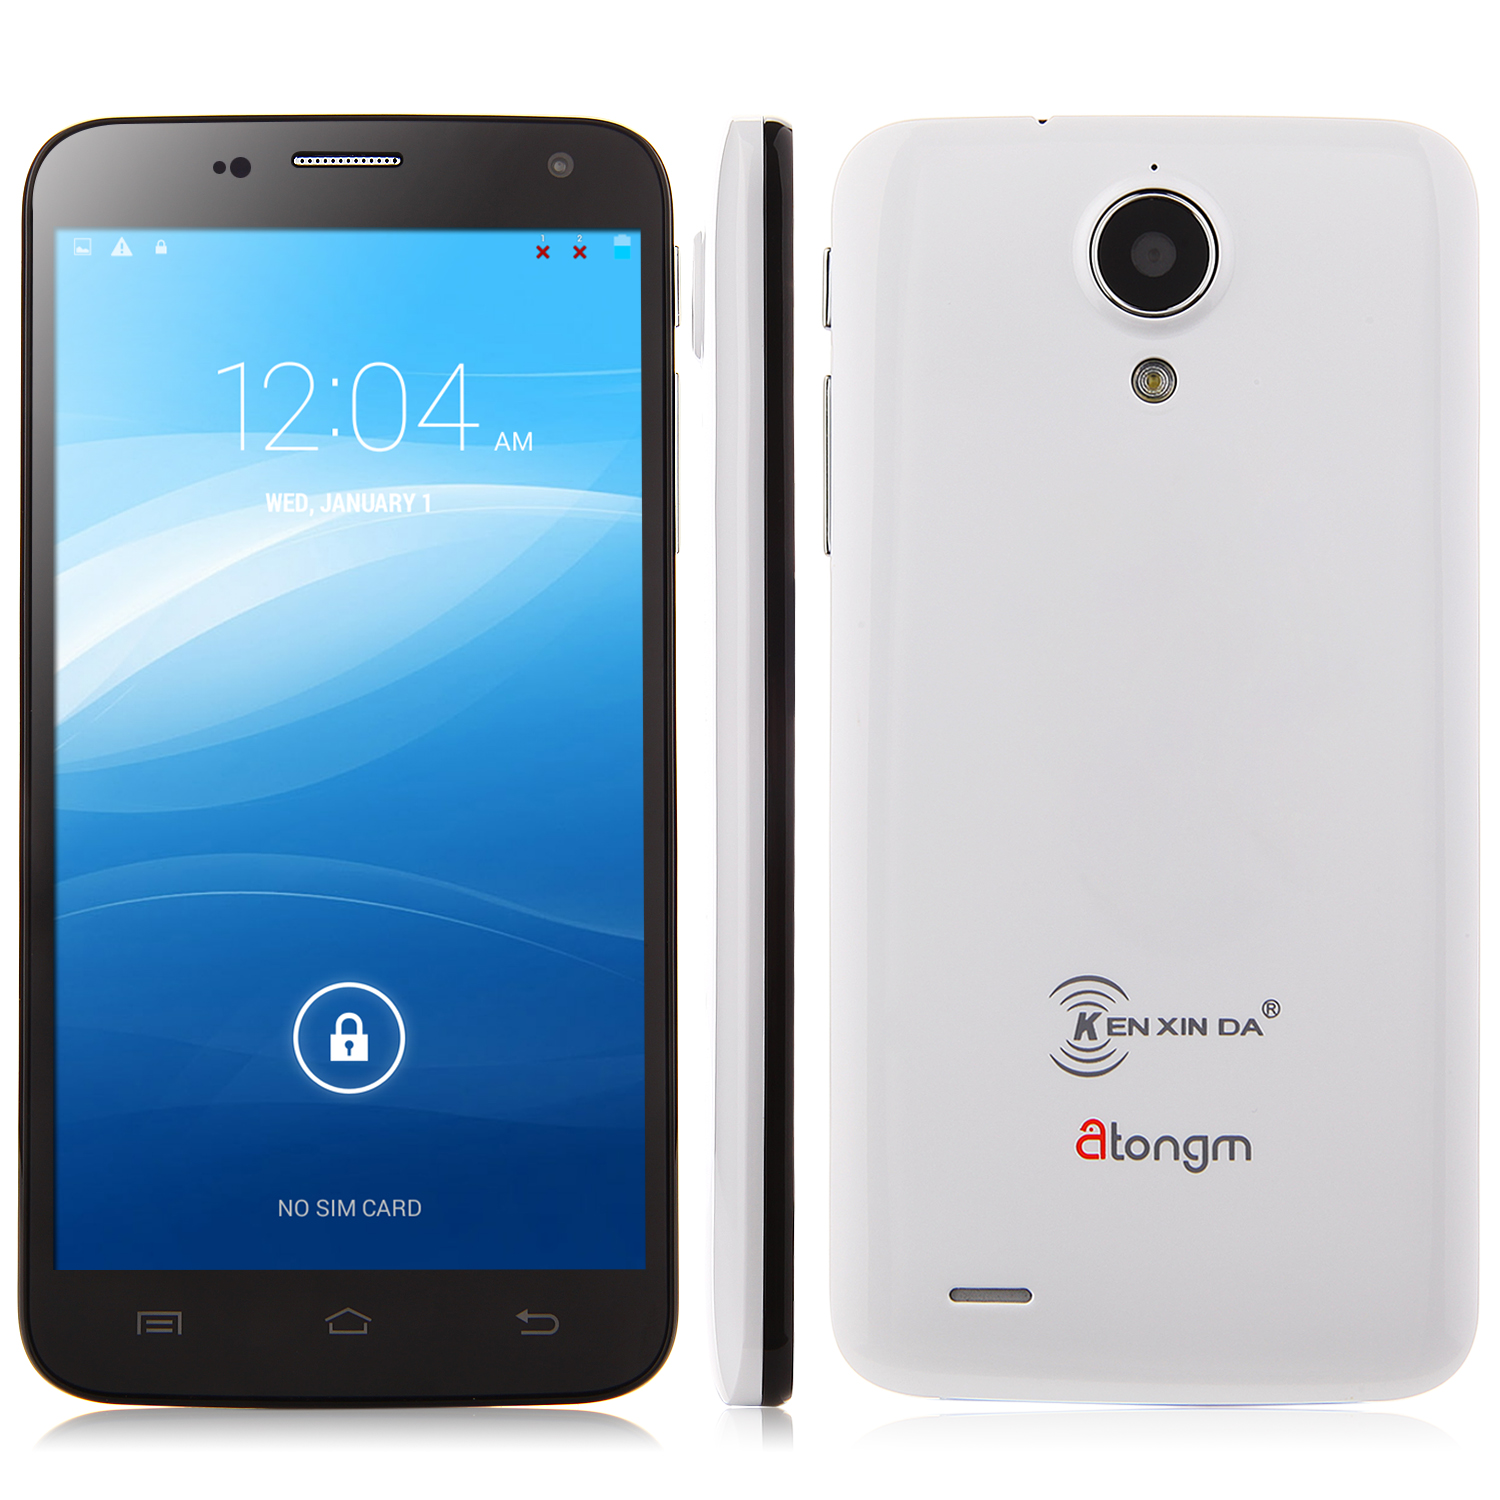 Atongm A6 Smartphone Android 4.4 MTK6582 Quad Core 5.0 Inch QHD Screen 1GB 8GB White